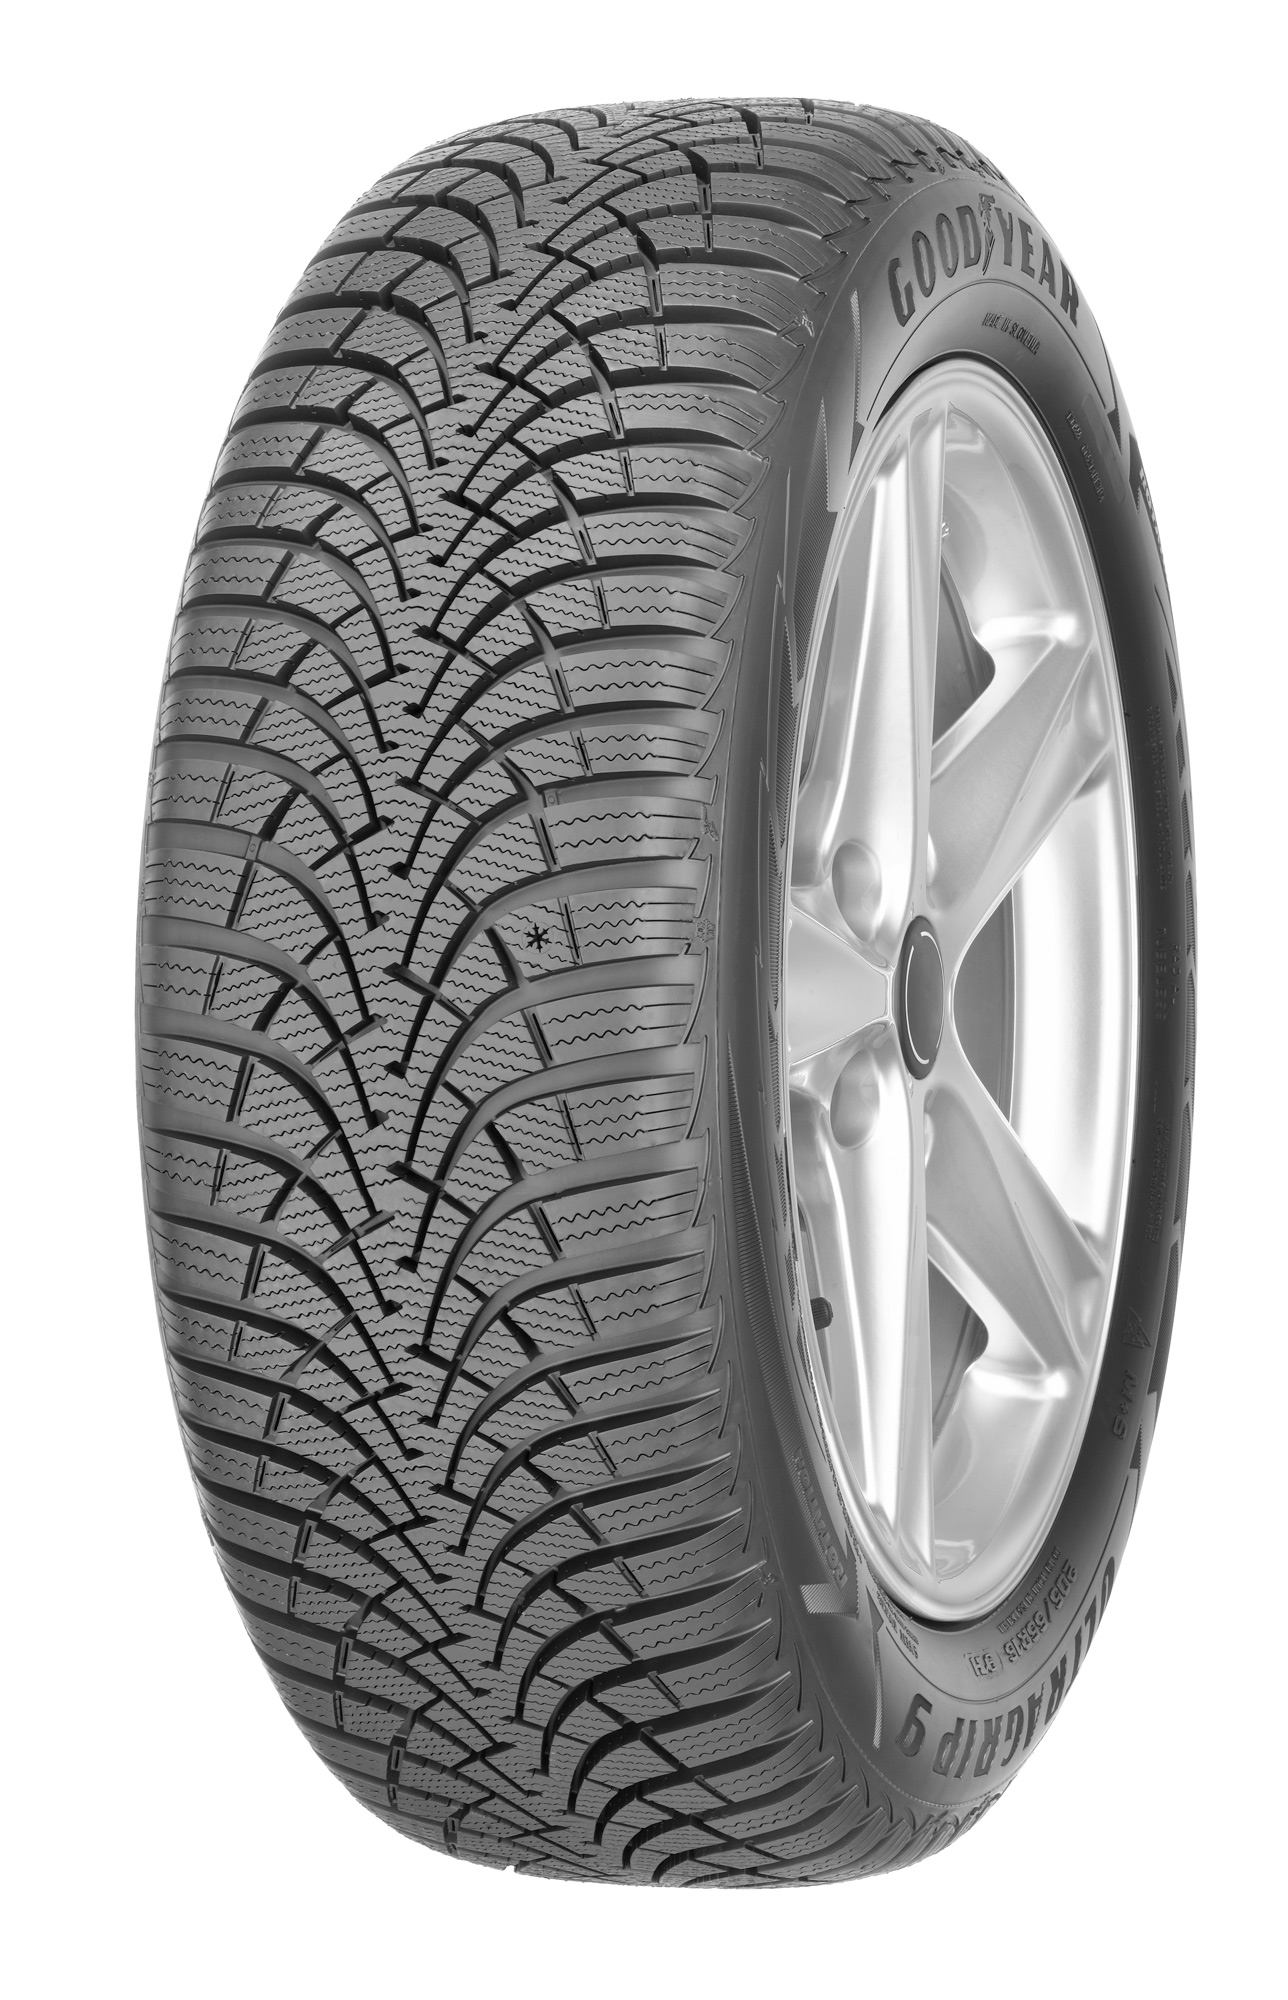 Anvelopa iarna GOODYEAR UG 9 MS 185/65 R15 88T